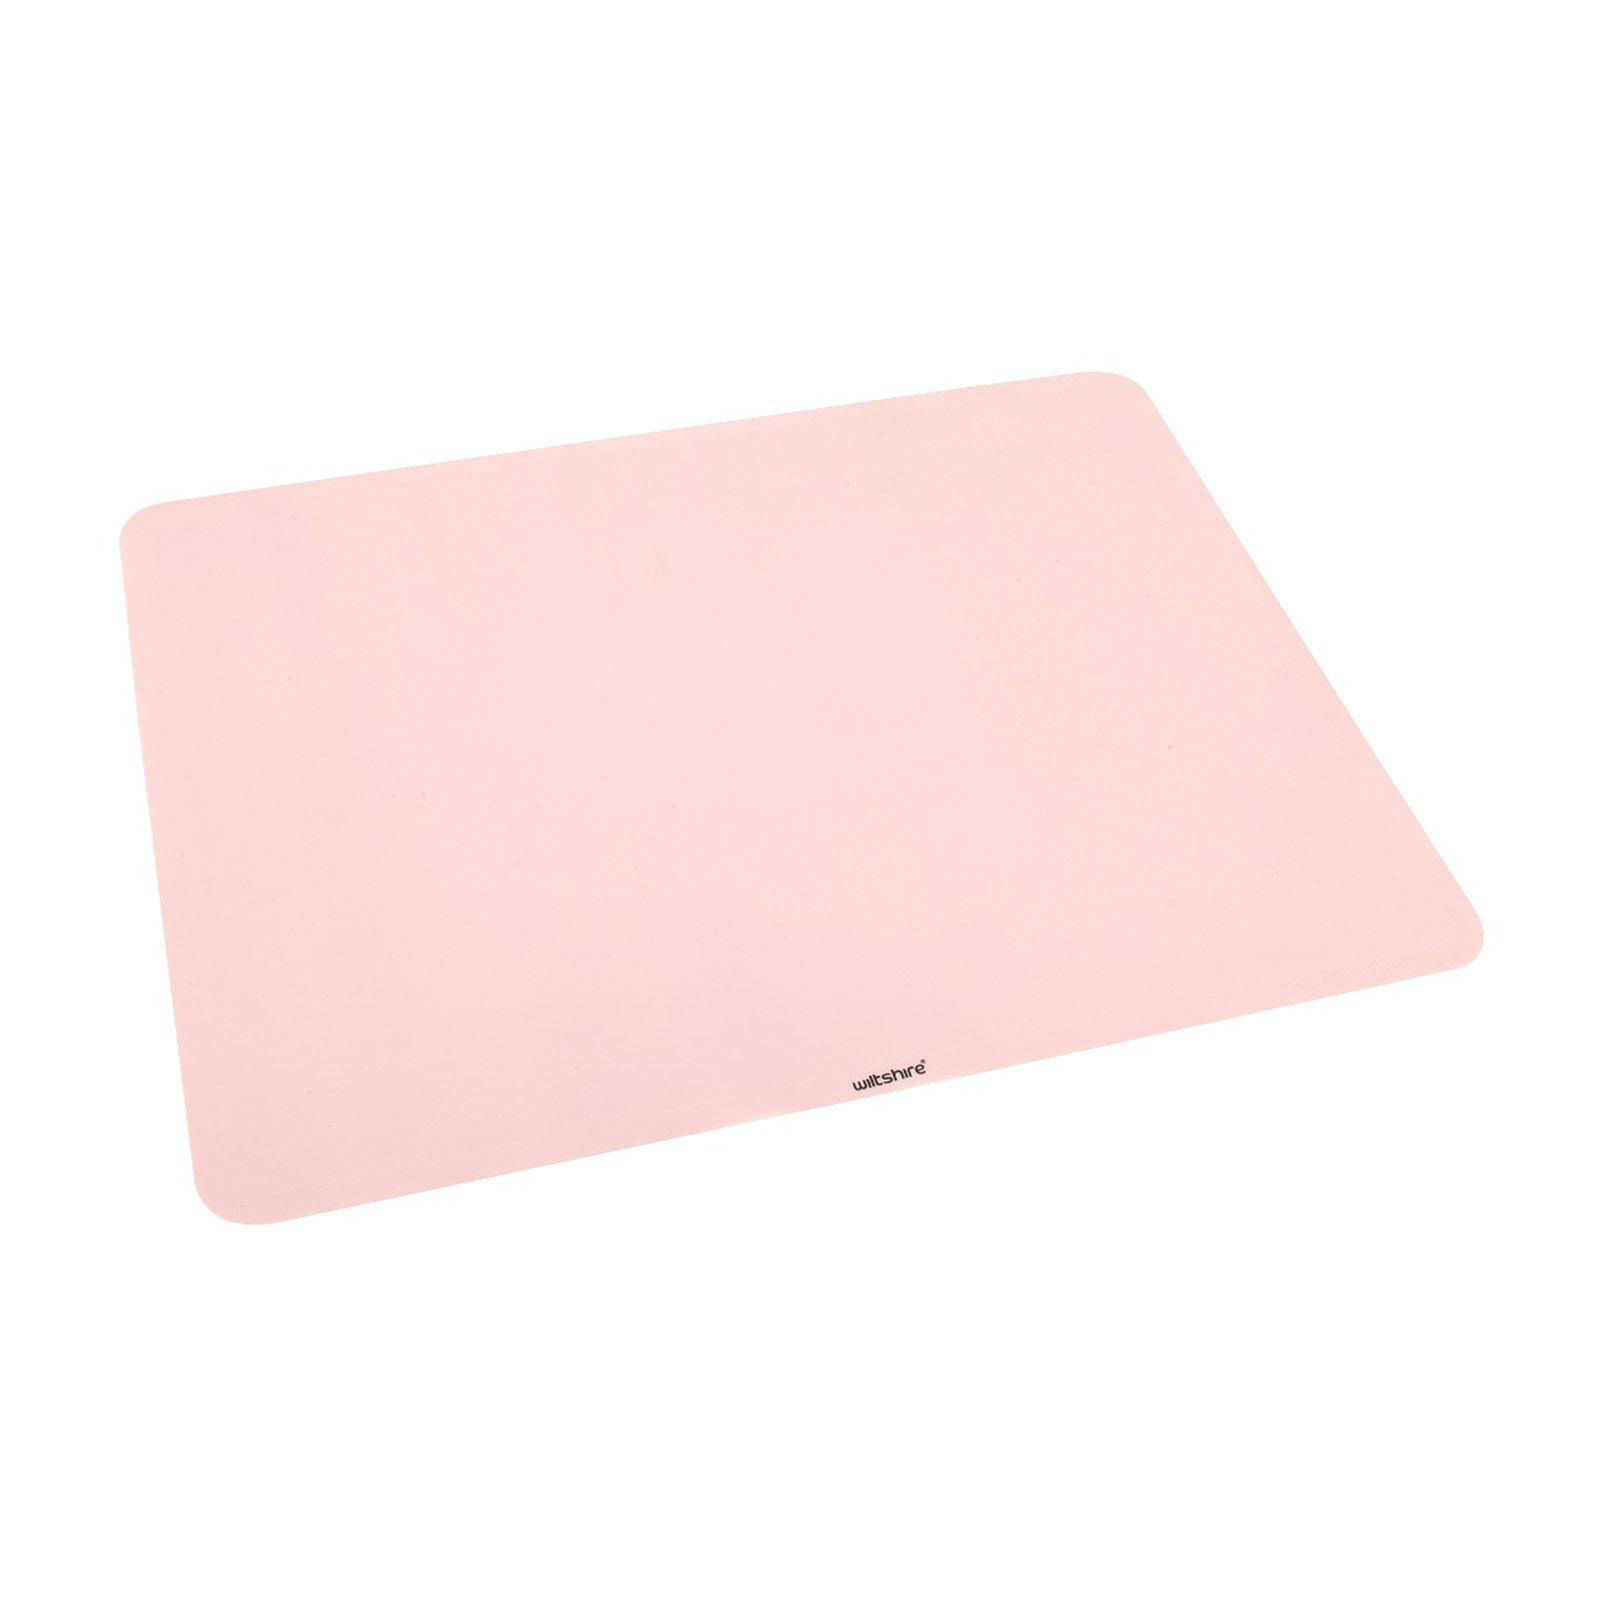 Wiltshire Art Of Baking Silicone Baking Mat